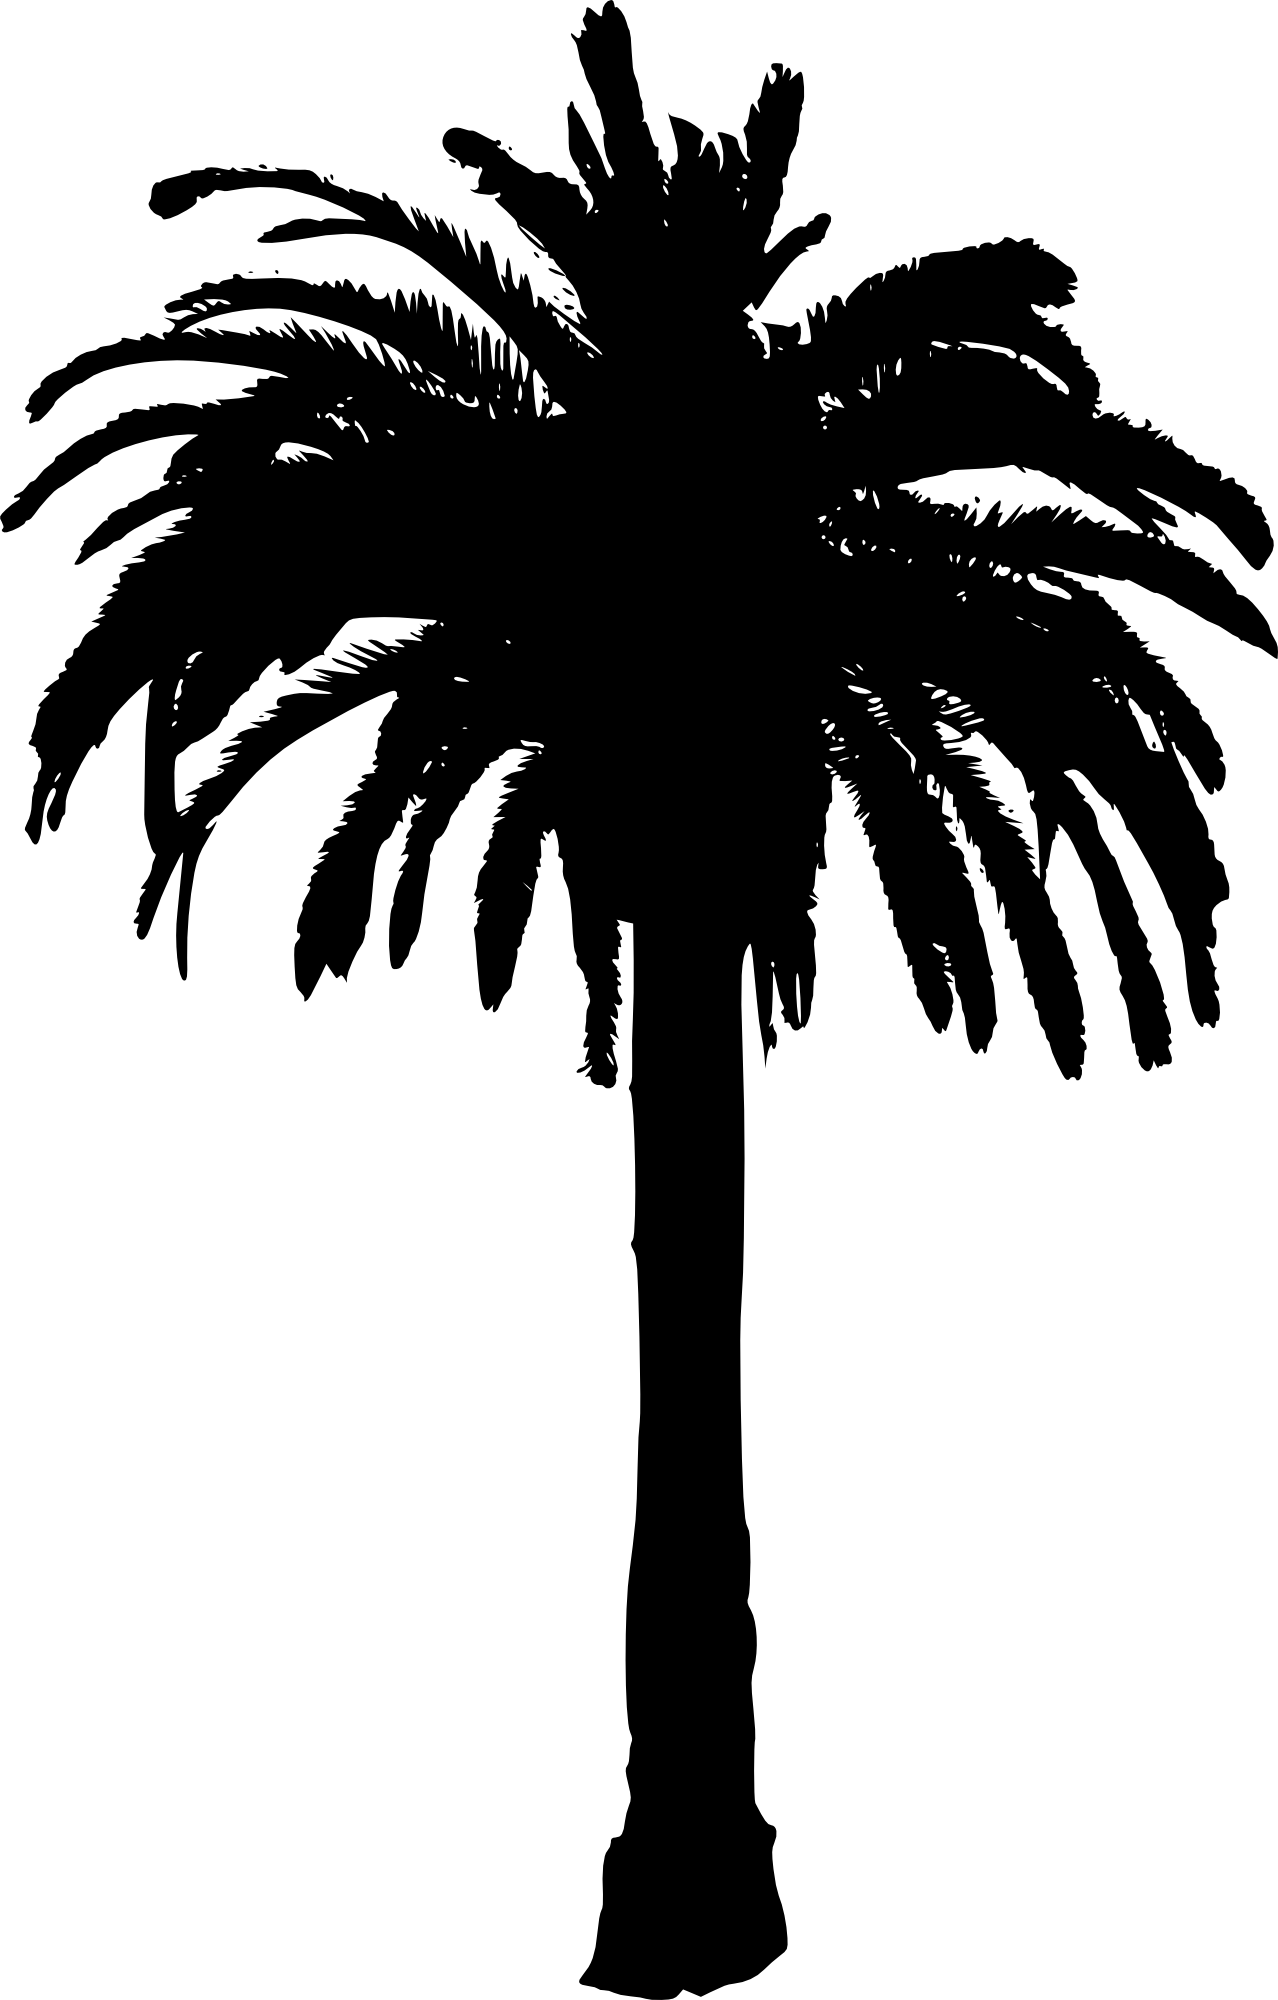 Palm tree clipart black and white no background vector royalty free download Bamboo Forest Drawing at GetDrawings.com | Free for personal use ... vector royalty free download